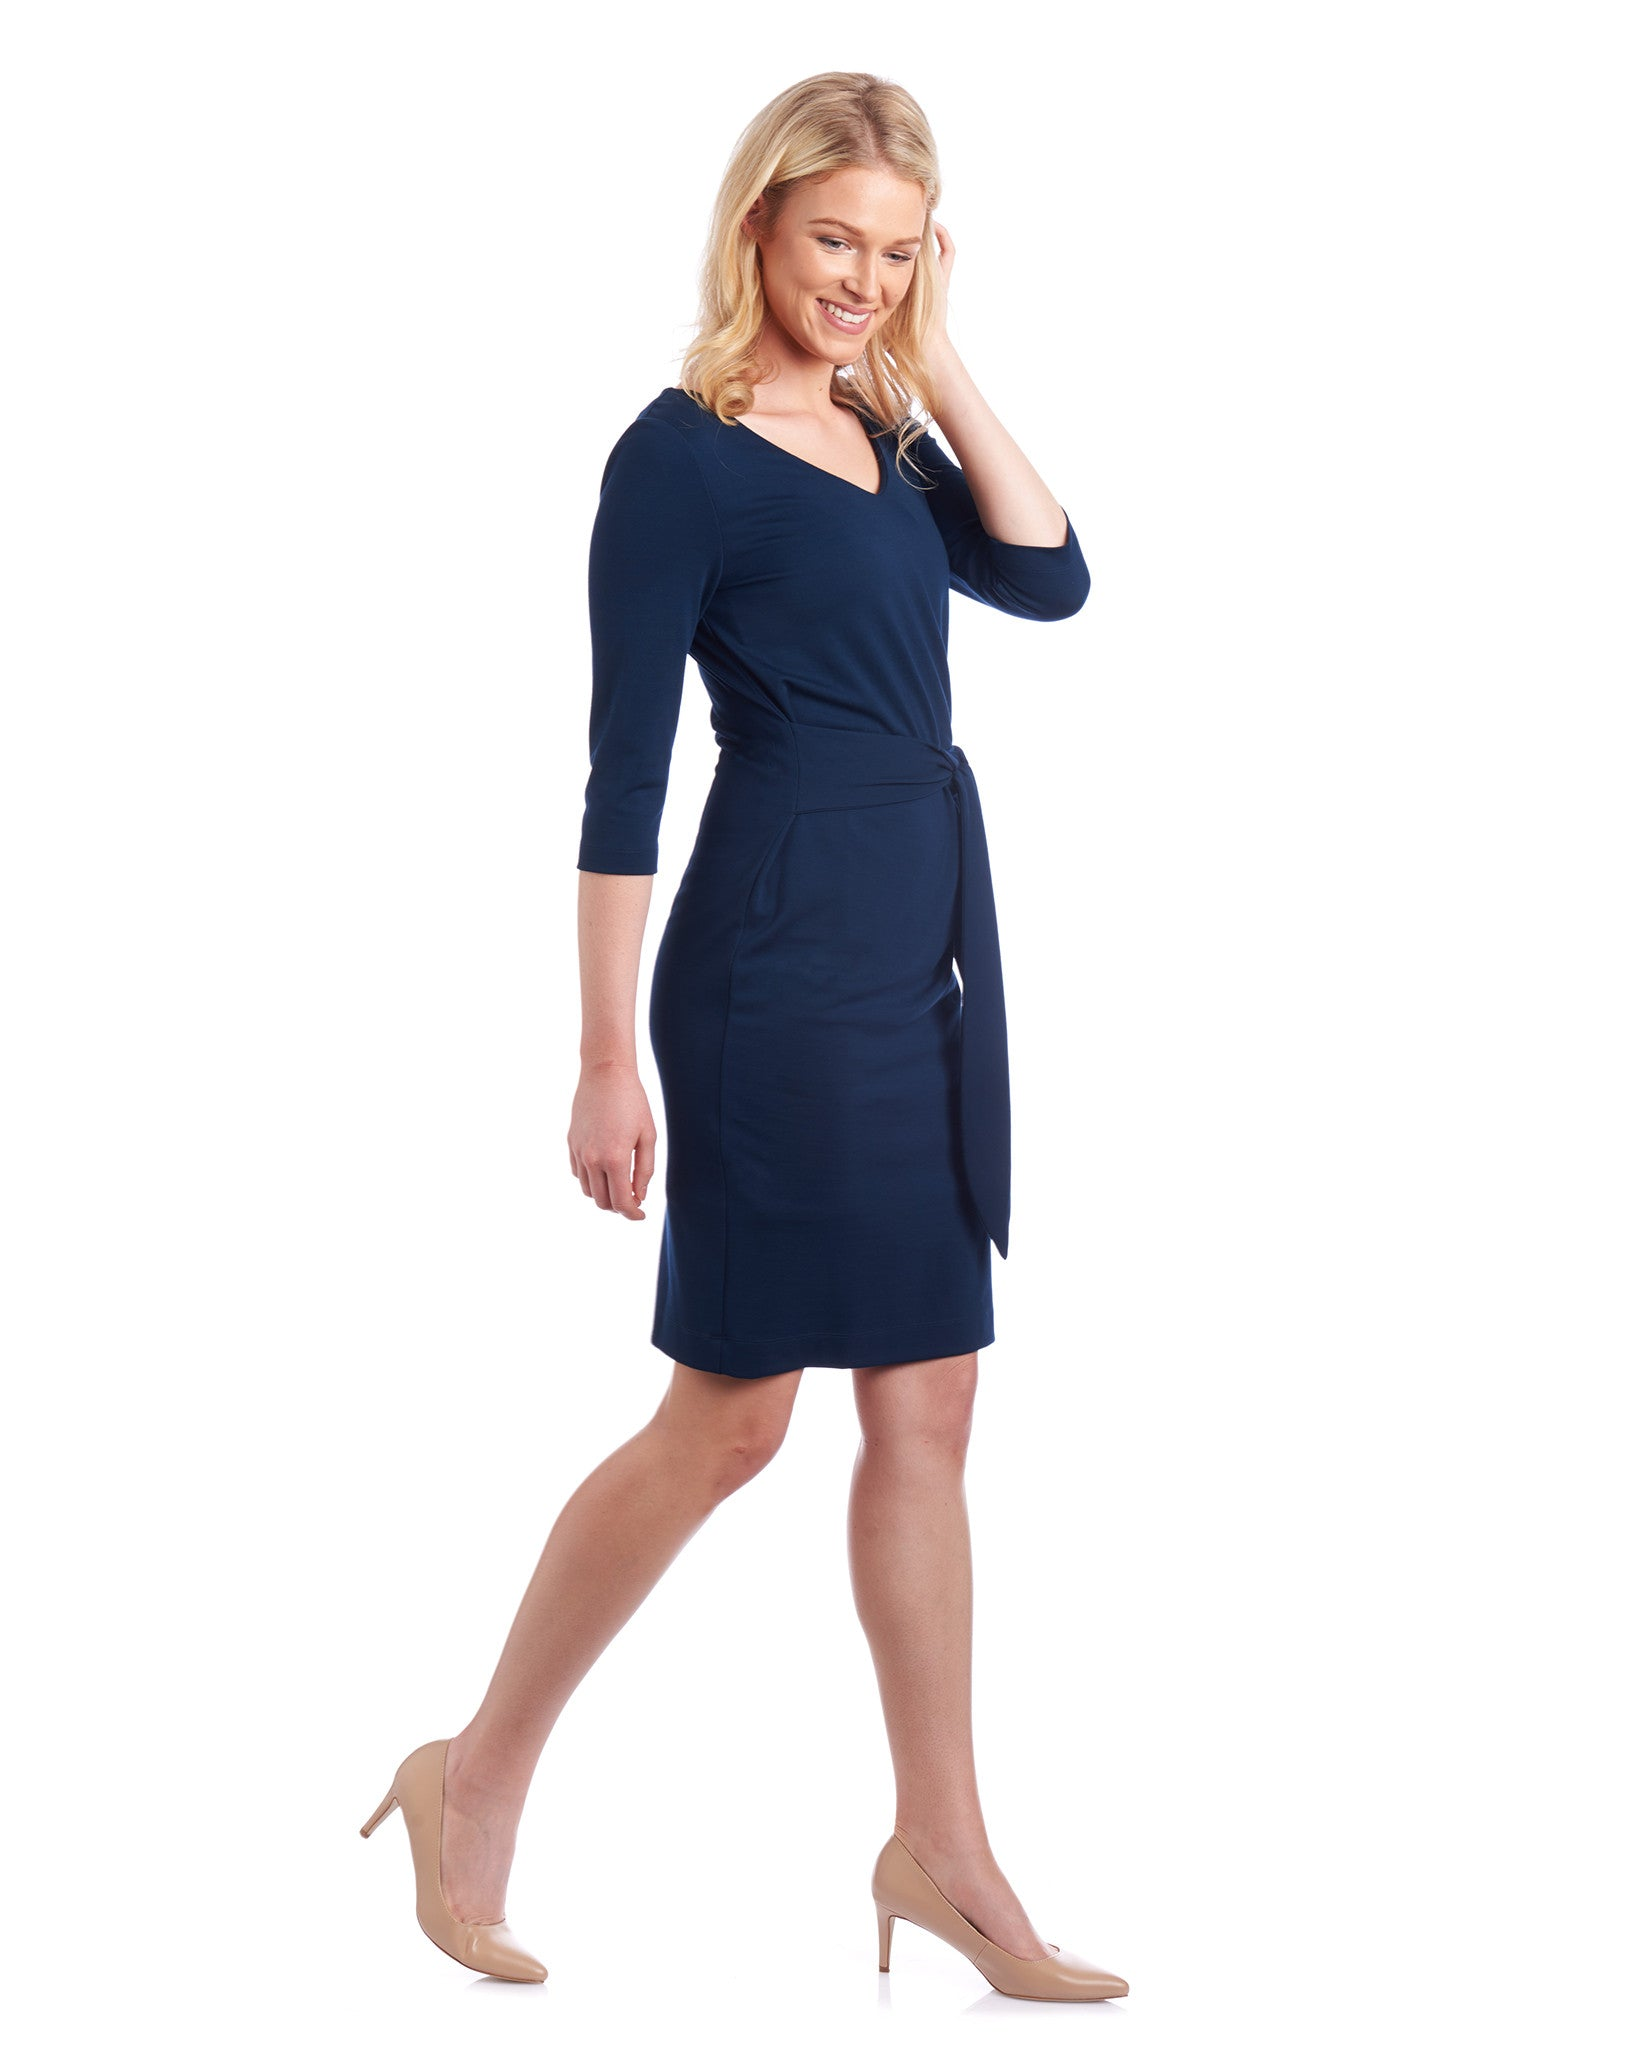 With the Anna Side Tie Pencil Dress you can customise the dress length and neck line